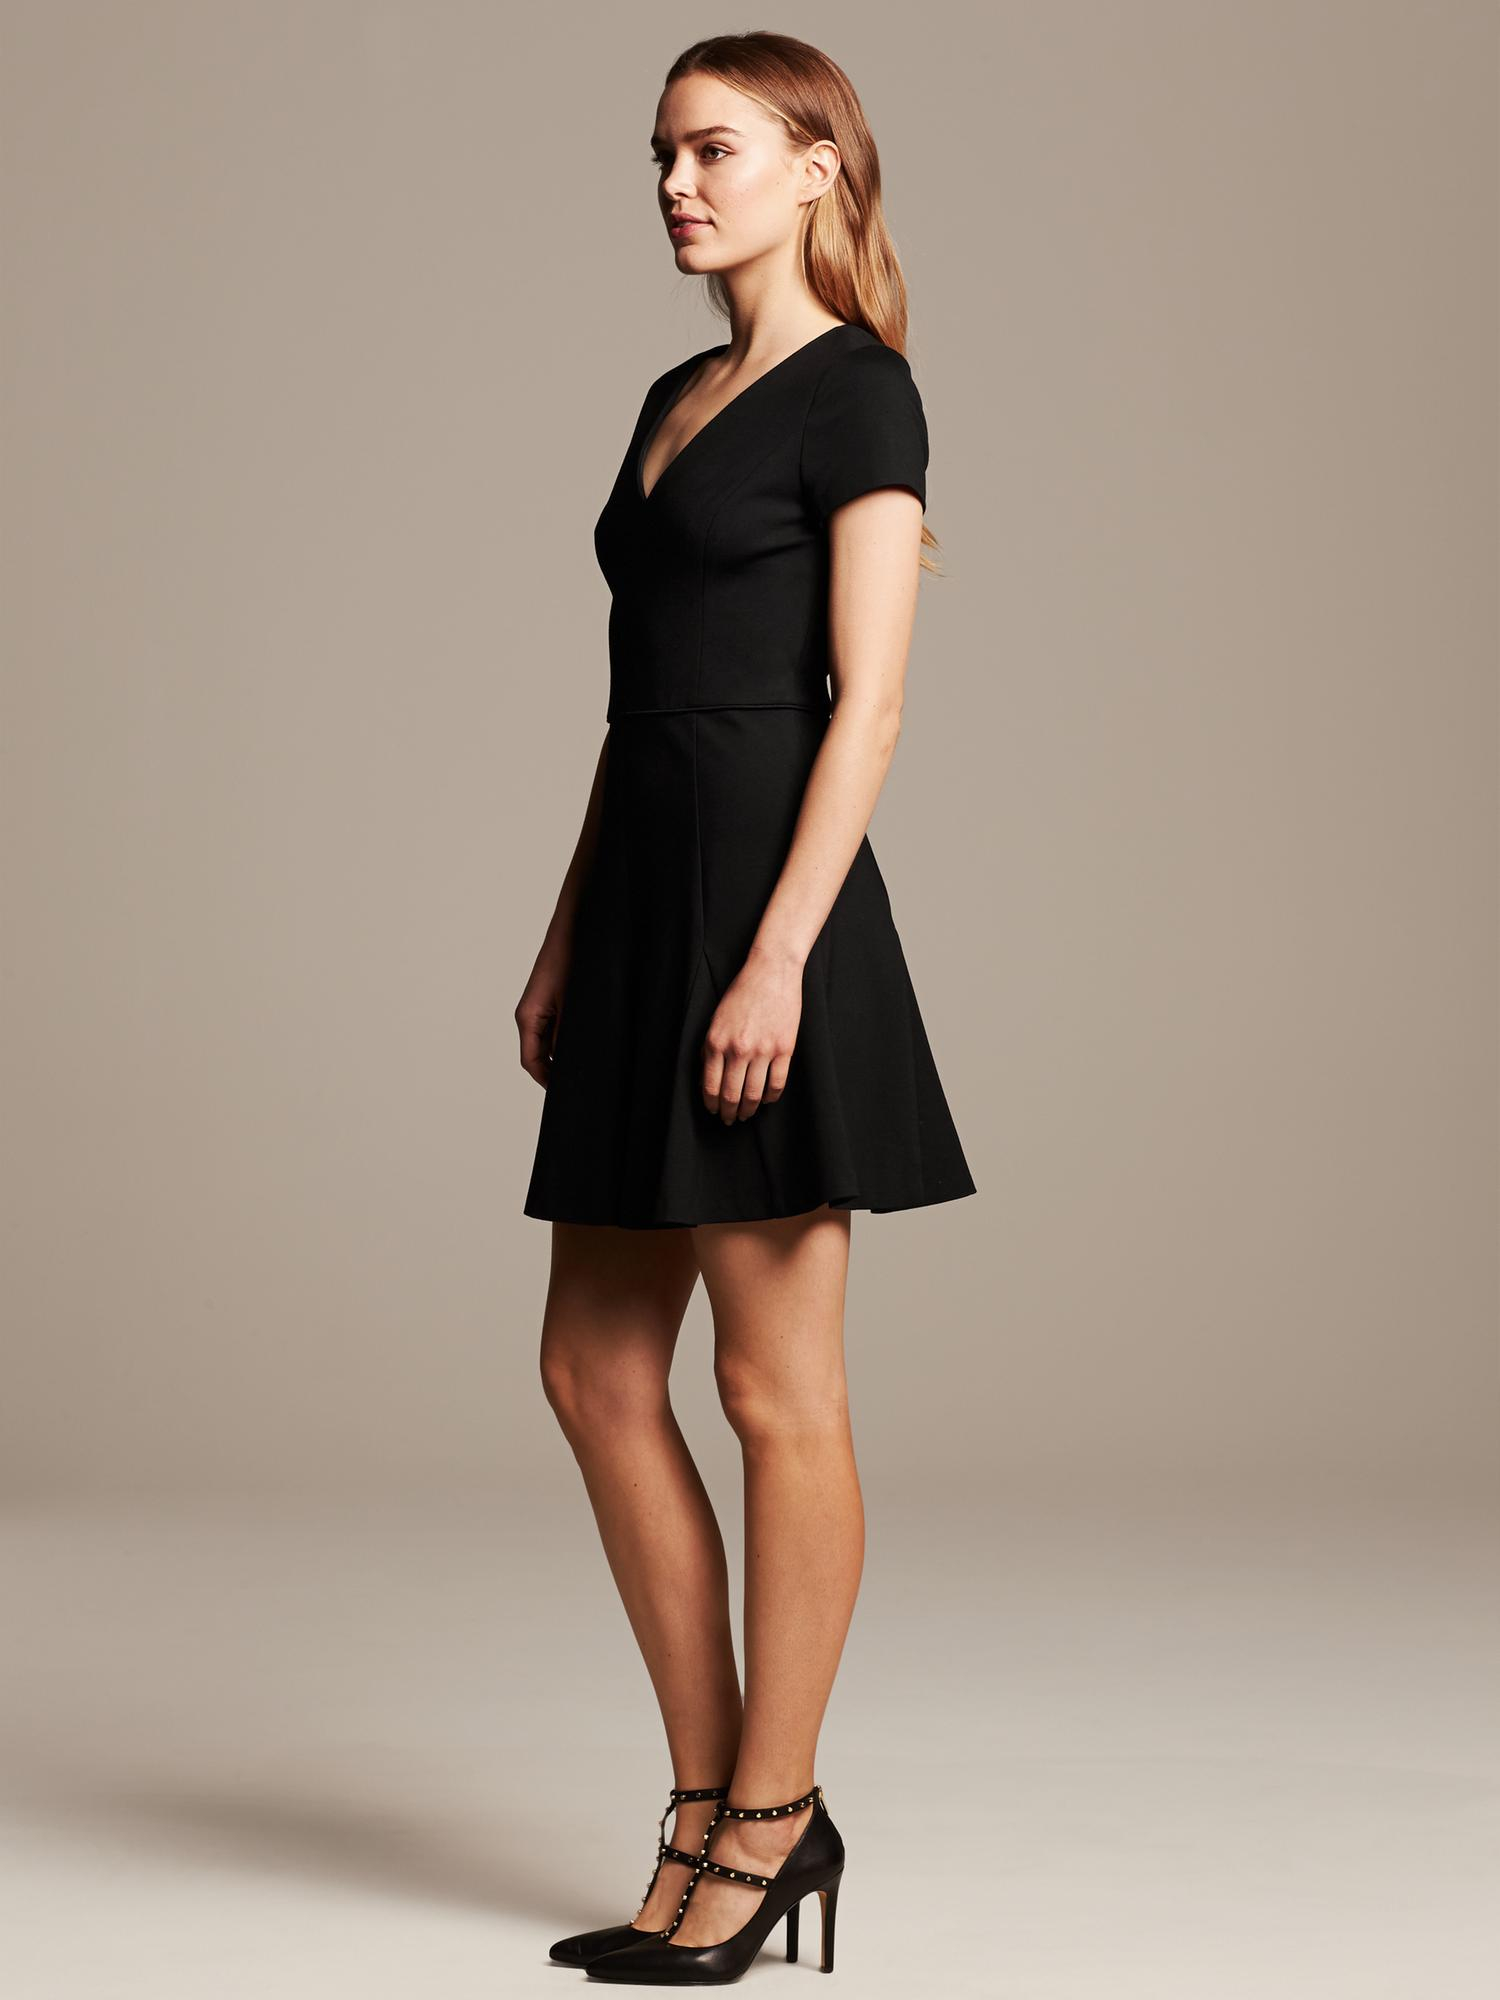 Turmec banana republic black cap sleeve dress for Banana republic wedding dresses